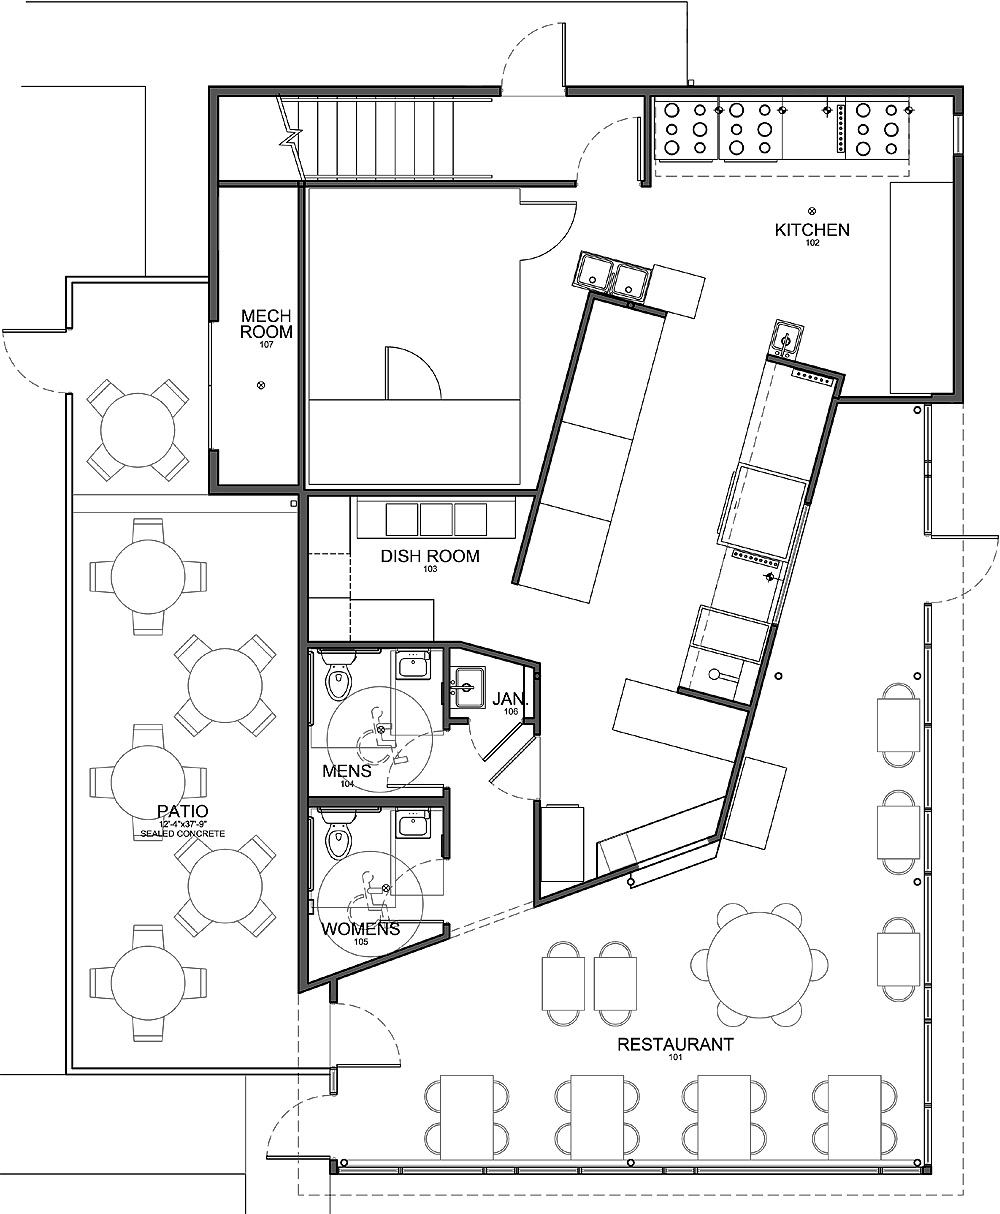 Restaurant Kitchen Layout Autocad: Acapulco Mexican Restaurant About Set For Permitting